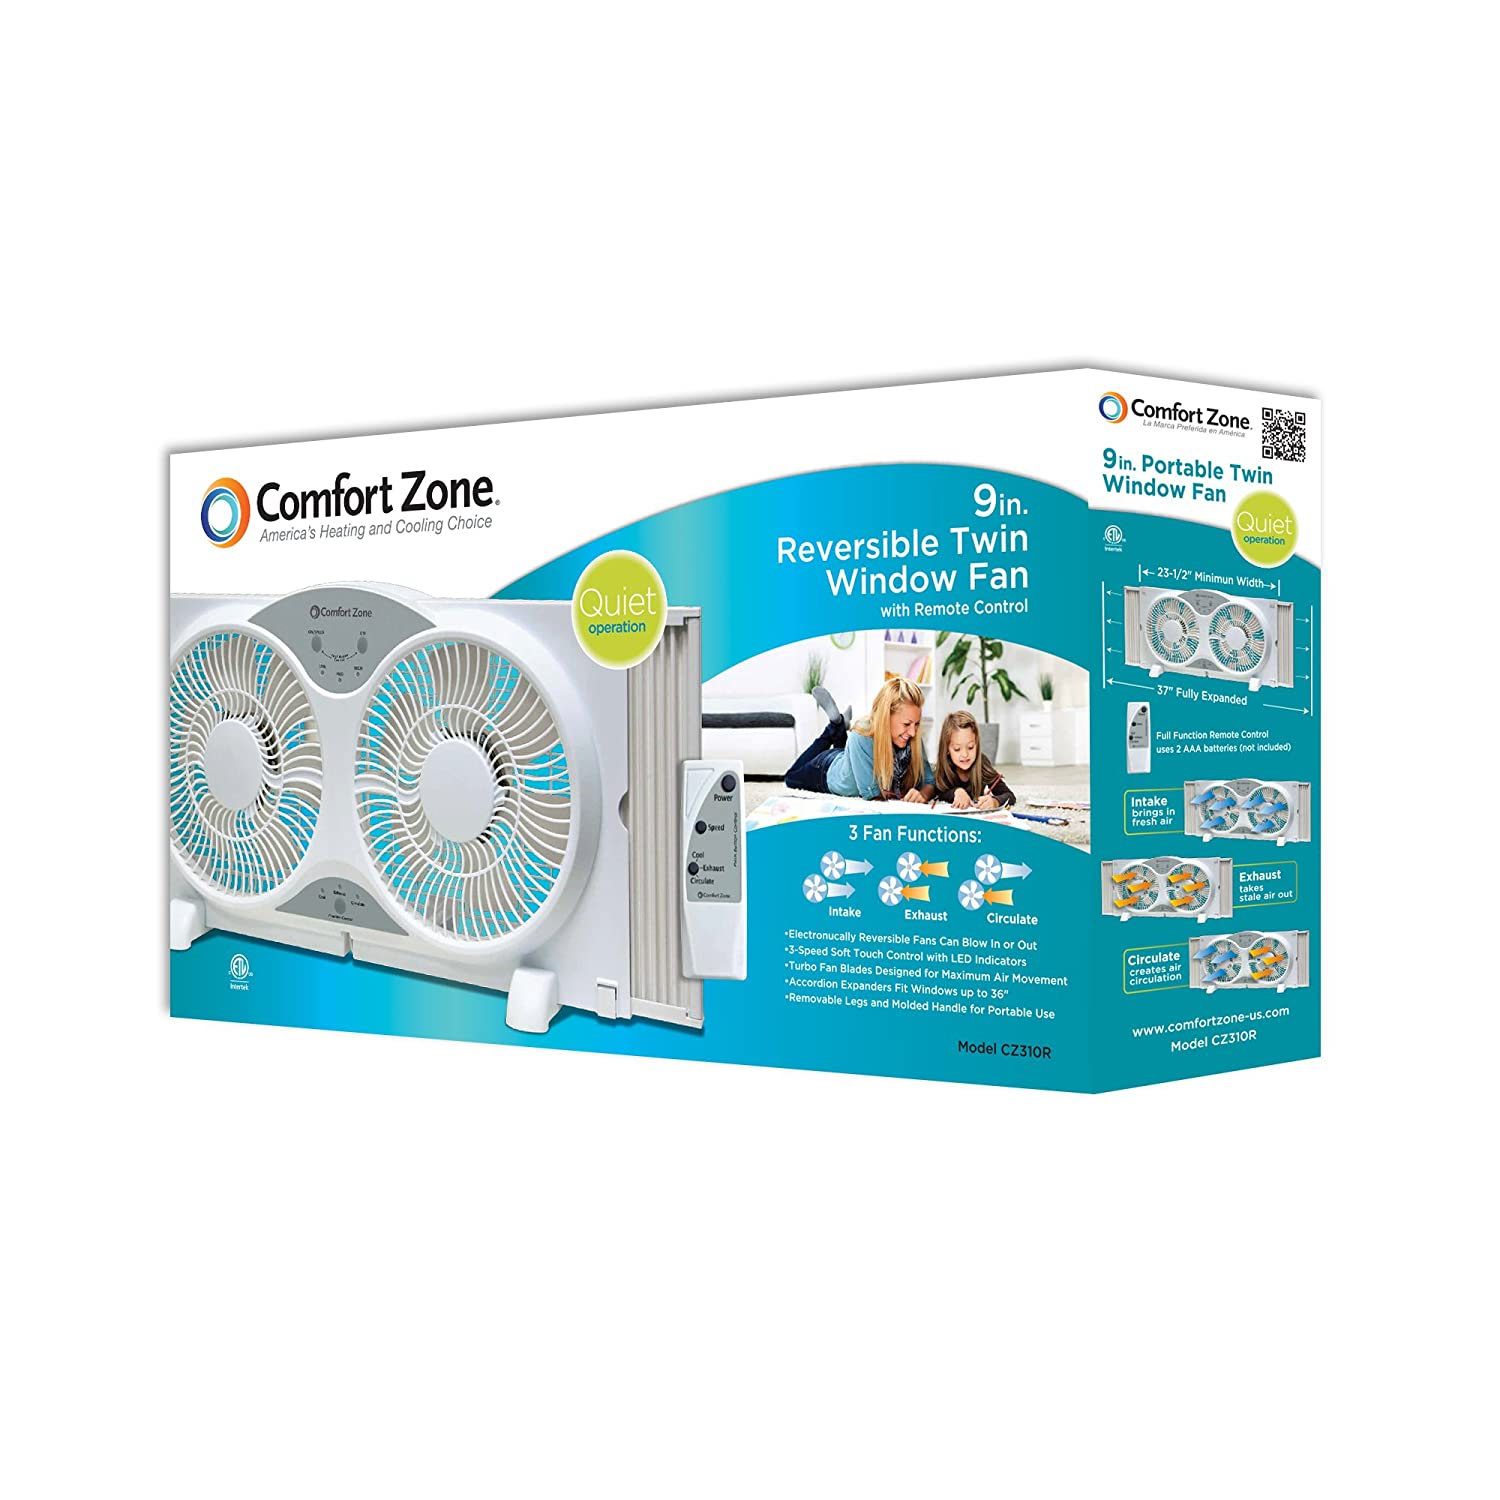 Fans taking pictures with cell phone behind barrier stock photo - Amazon Com Comfort Zone Twin Window Fan 3 Speed Fan With 9 Inch Turbo Blades With Remote Control Home Improvement